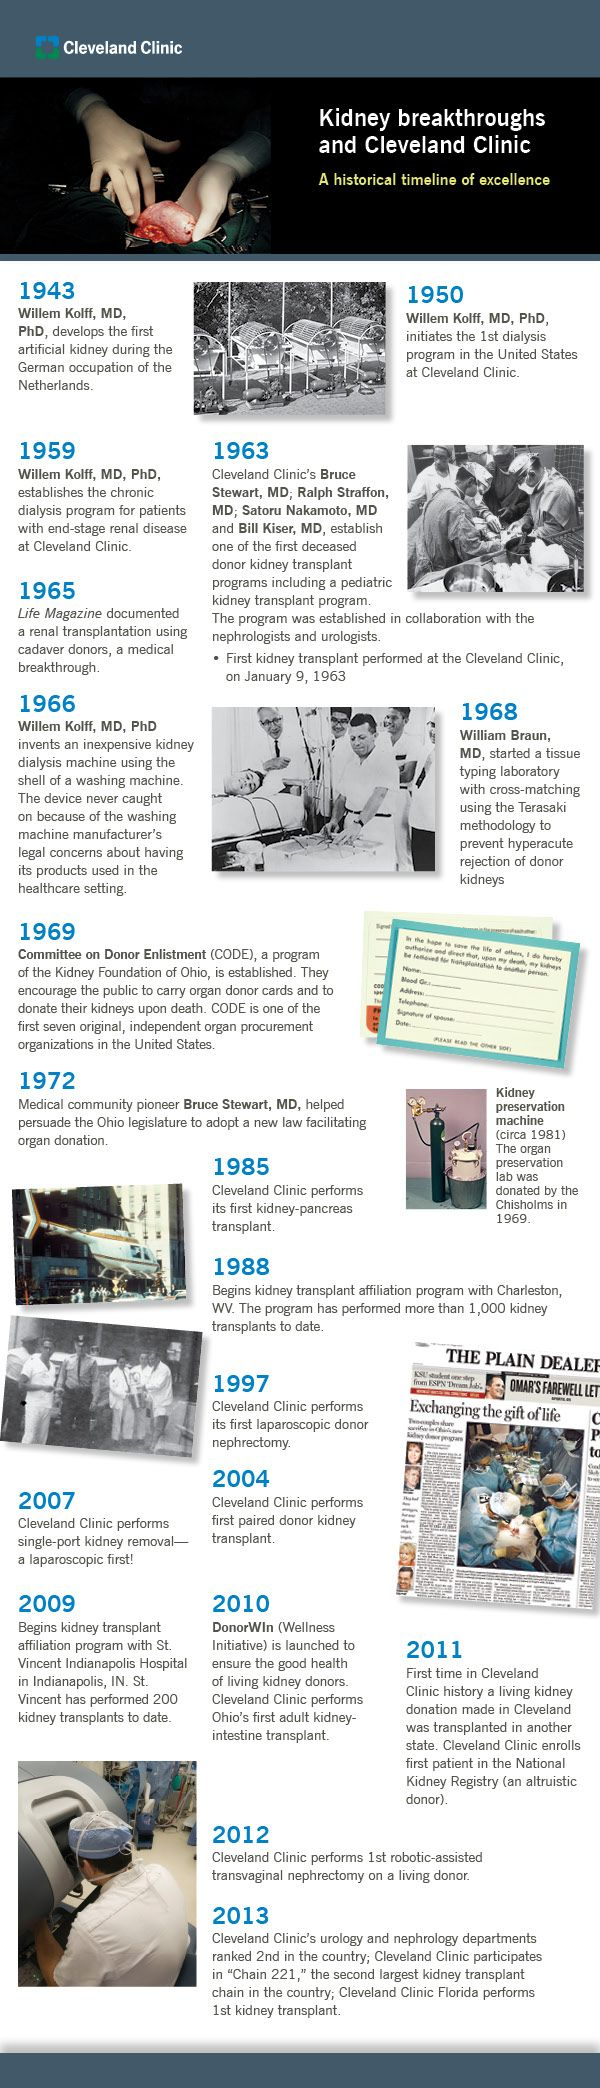 The historical timeline and evolution of #kidney transplant at Cleveland Clinic. #history